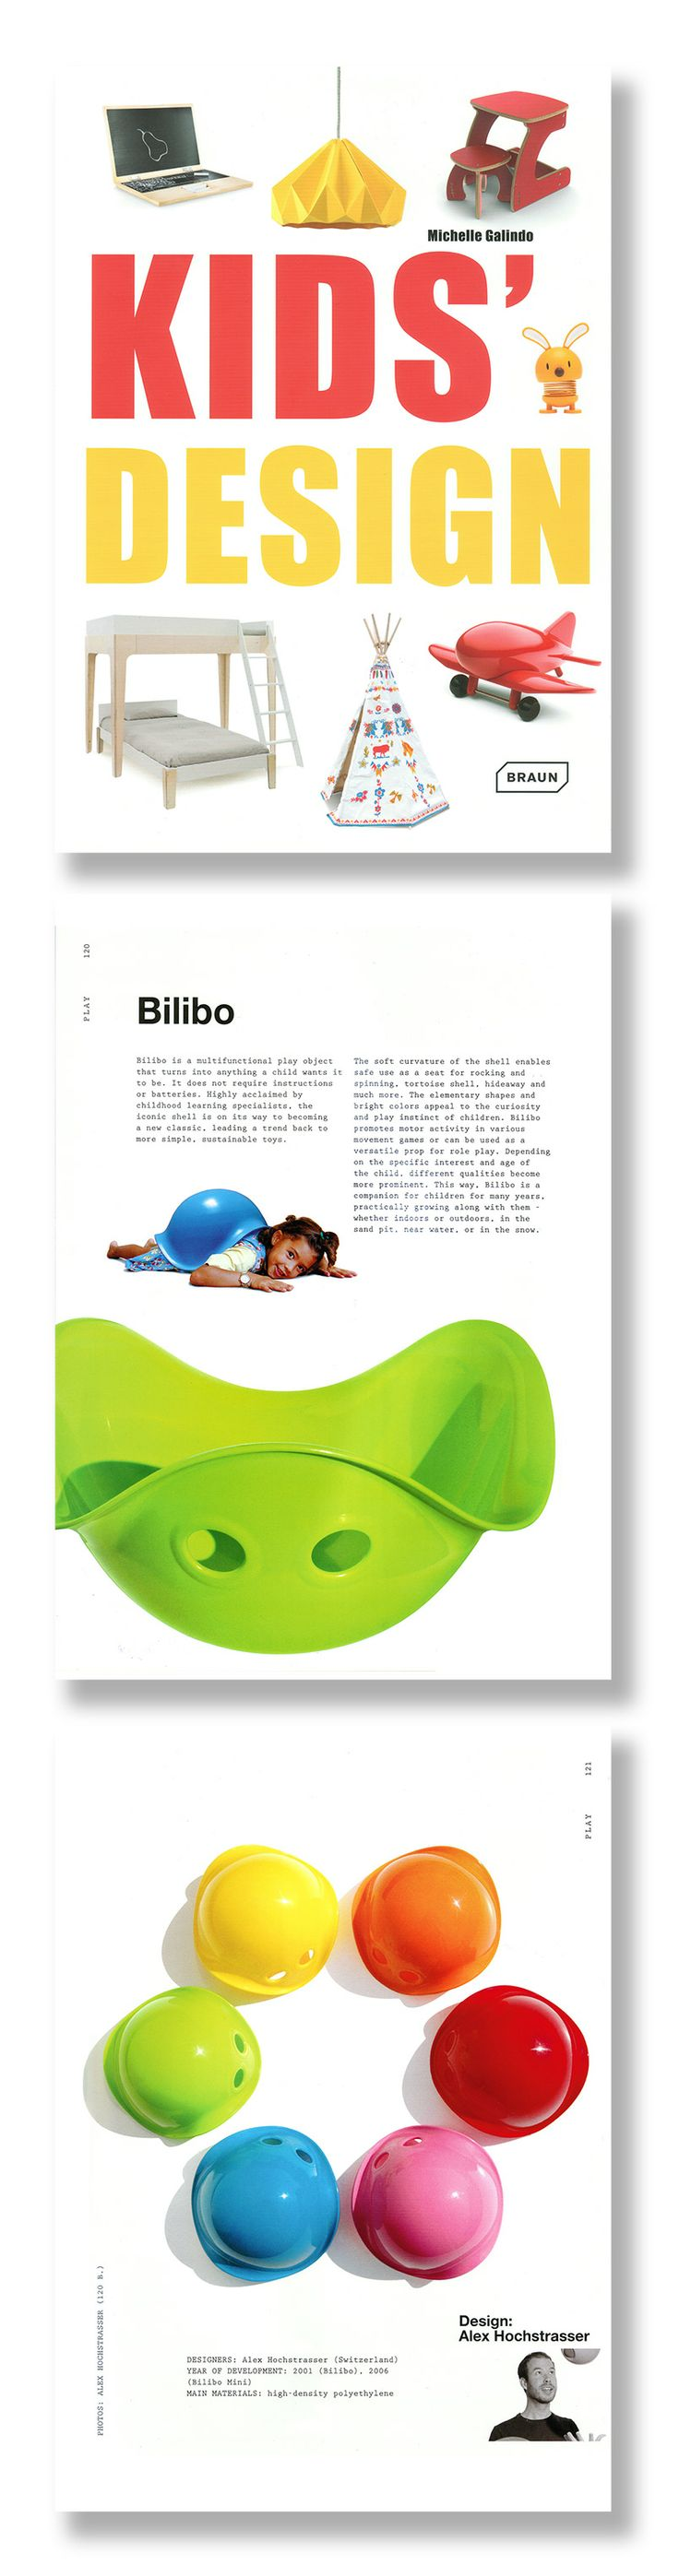 """KID'S DESIGN by Michelle Galindo: """"Successful kid's design unites quality, sustainability and safety with ingenuity, style and pleasure. This volume presents a selection of the most innovative designs for children, from novelties to the established classics. It is for all parents who value great design and want to pass it on to their children."""" Braun Publishing, 2014. #bilibo #design #alex_hochstrasser"""